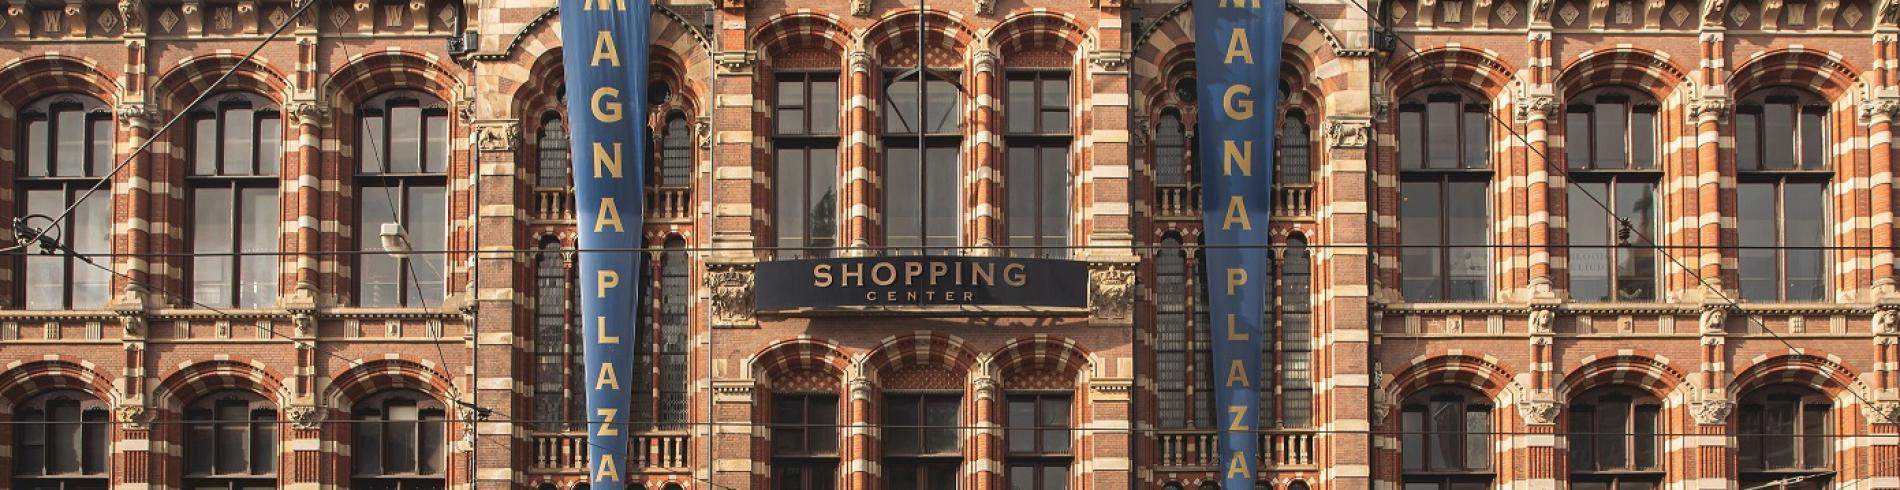 The Magna Plaza shopping centre in Amsterdam